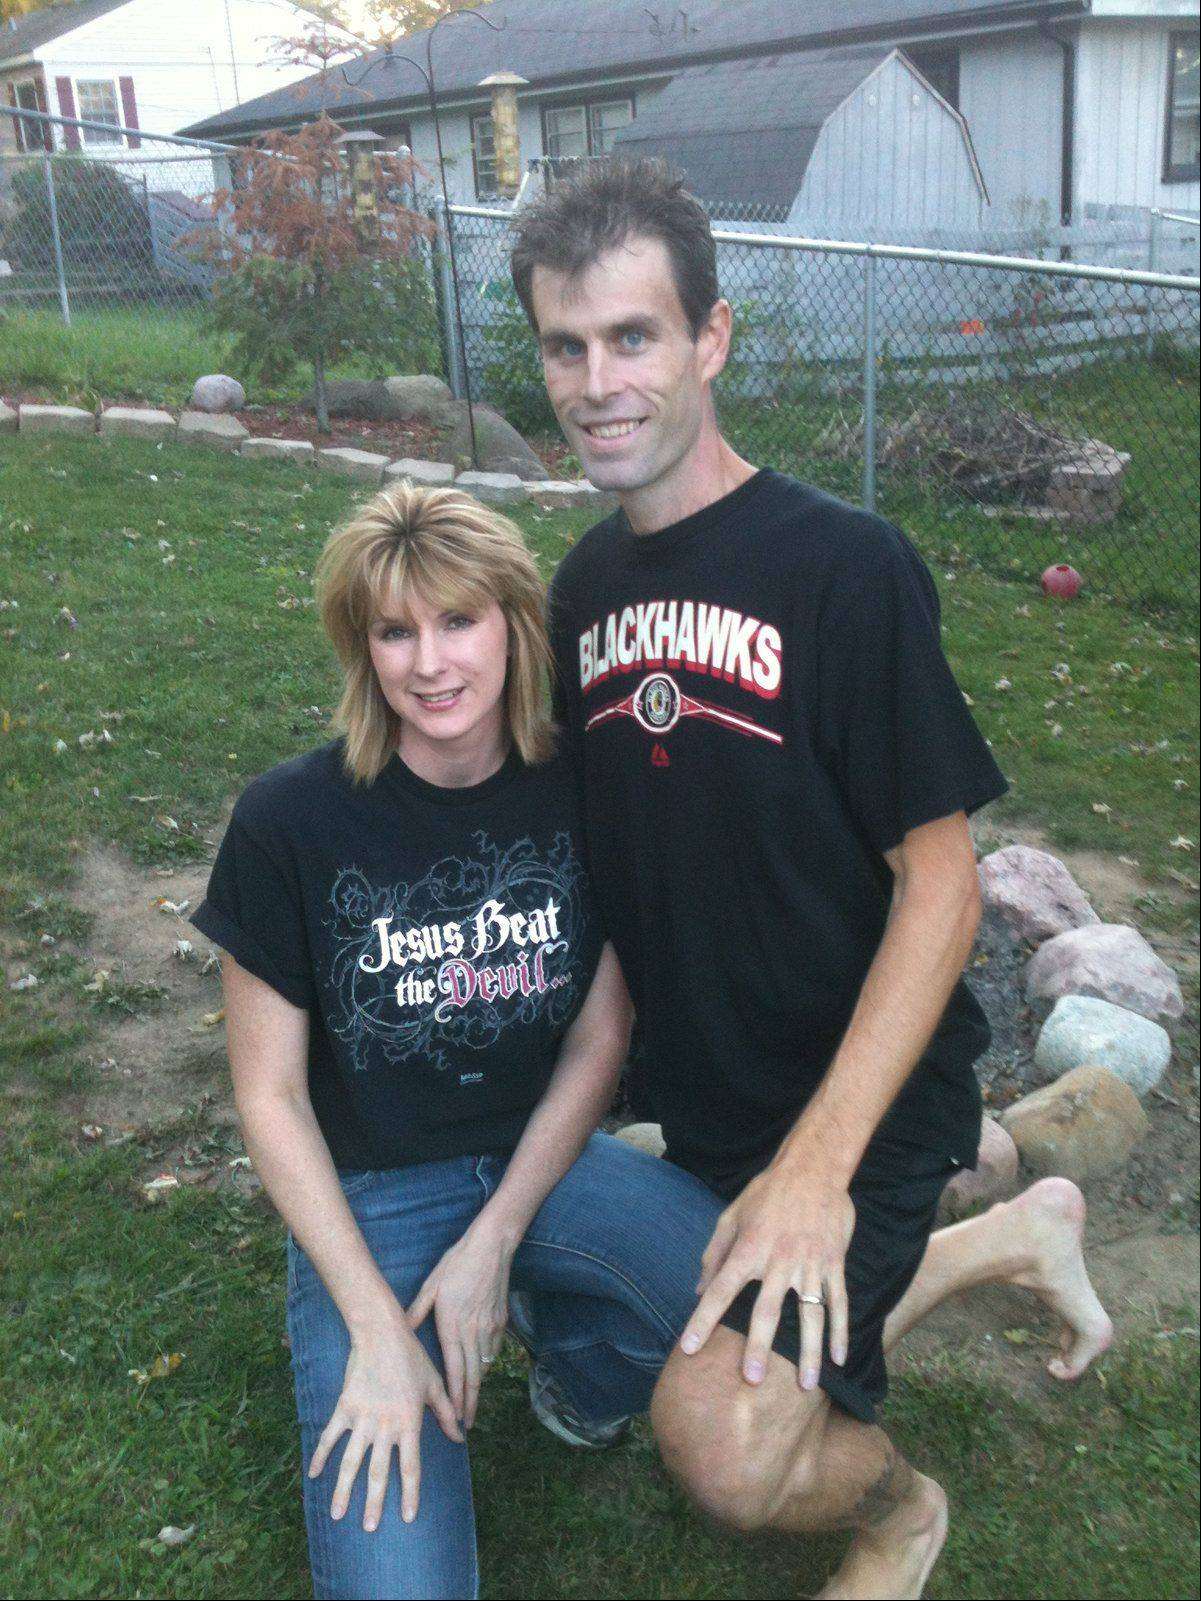 Renee Smith and her husband, Tony, a few days after a piece of shrapnel landed in her cheek. A backyard fire ignited two bullets Sunday night at their home near Johnsburg.